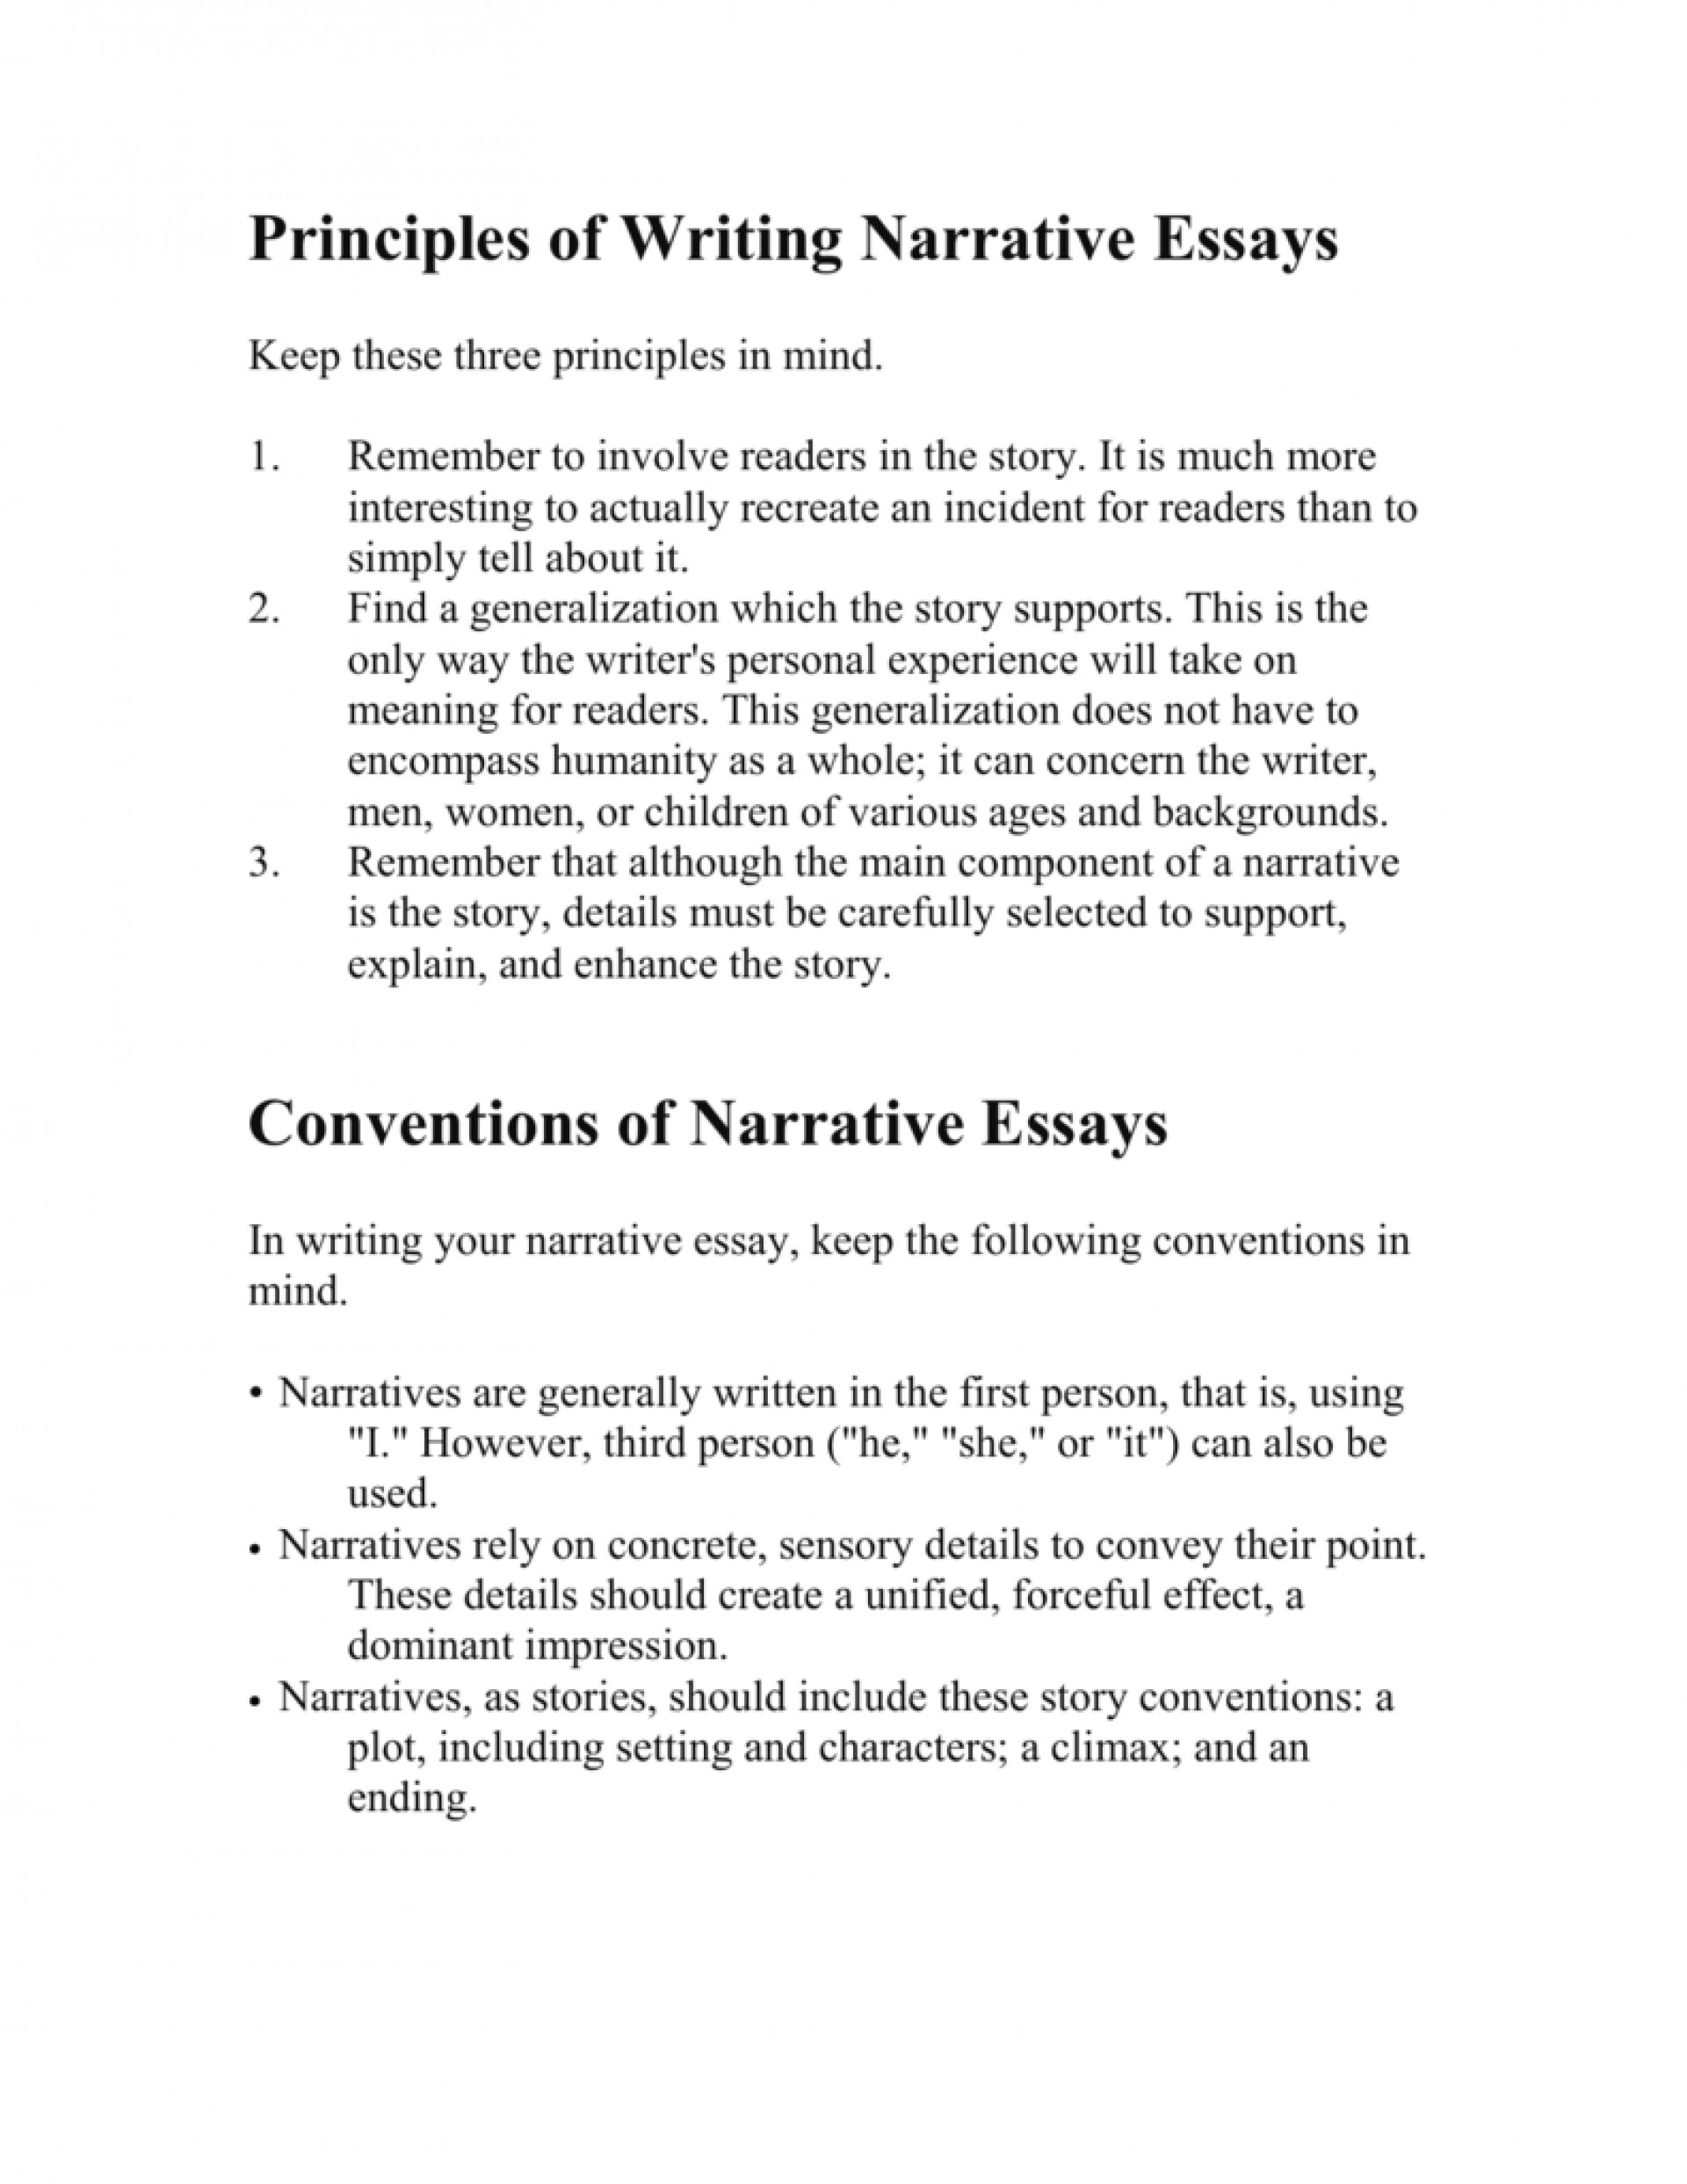 014 007210888 1 Essay Example Writing Amazing A Narrative About Being Judged Quizlet Powerpoint 1920